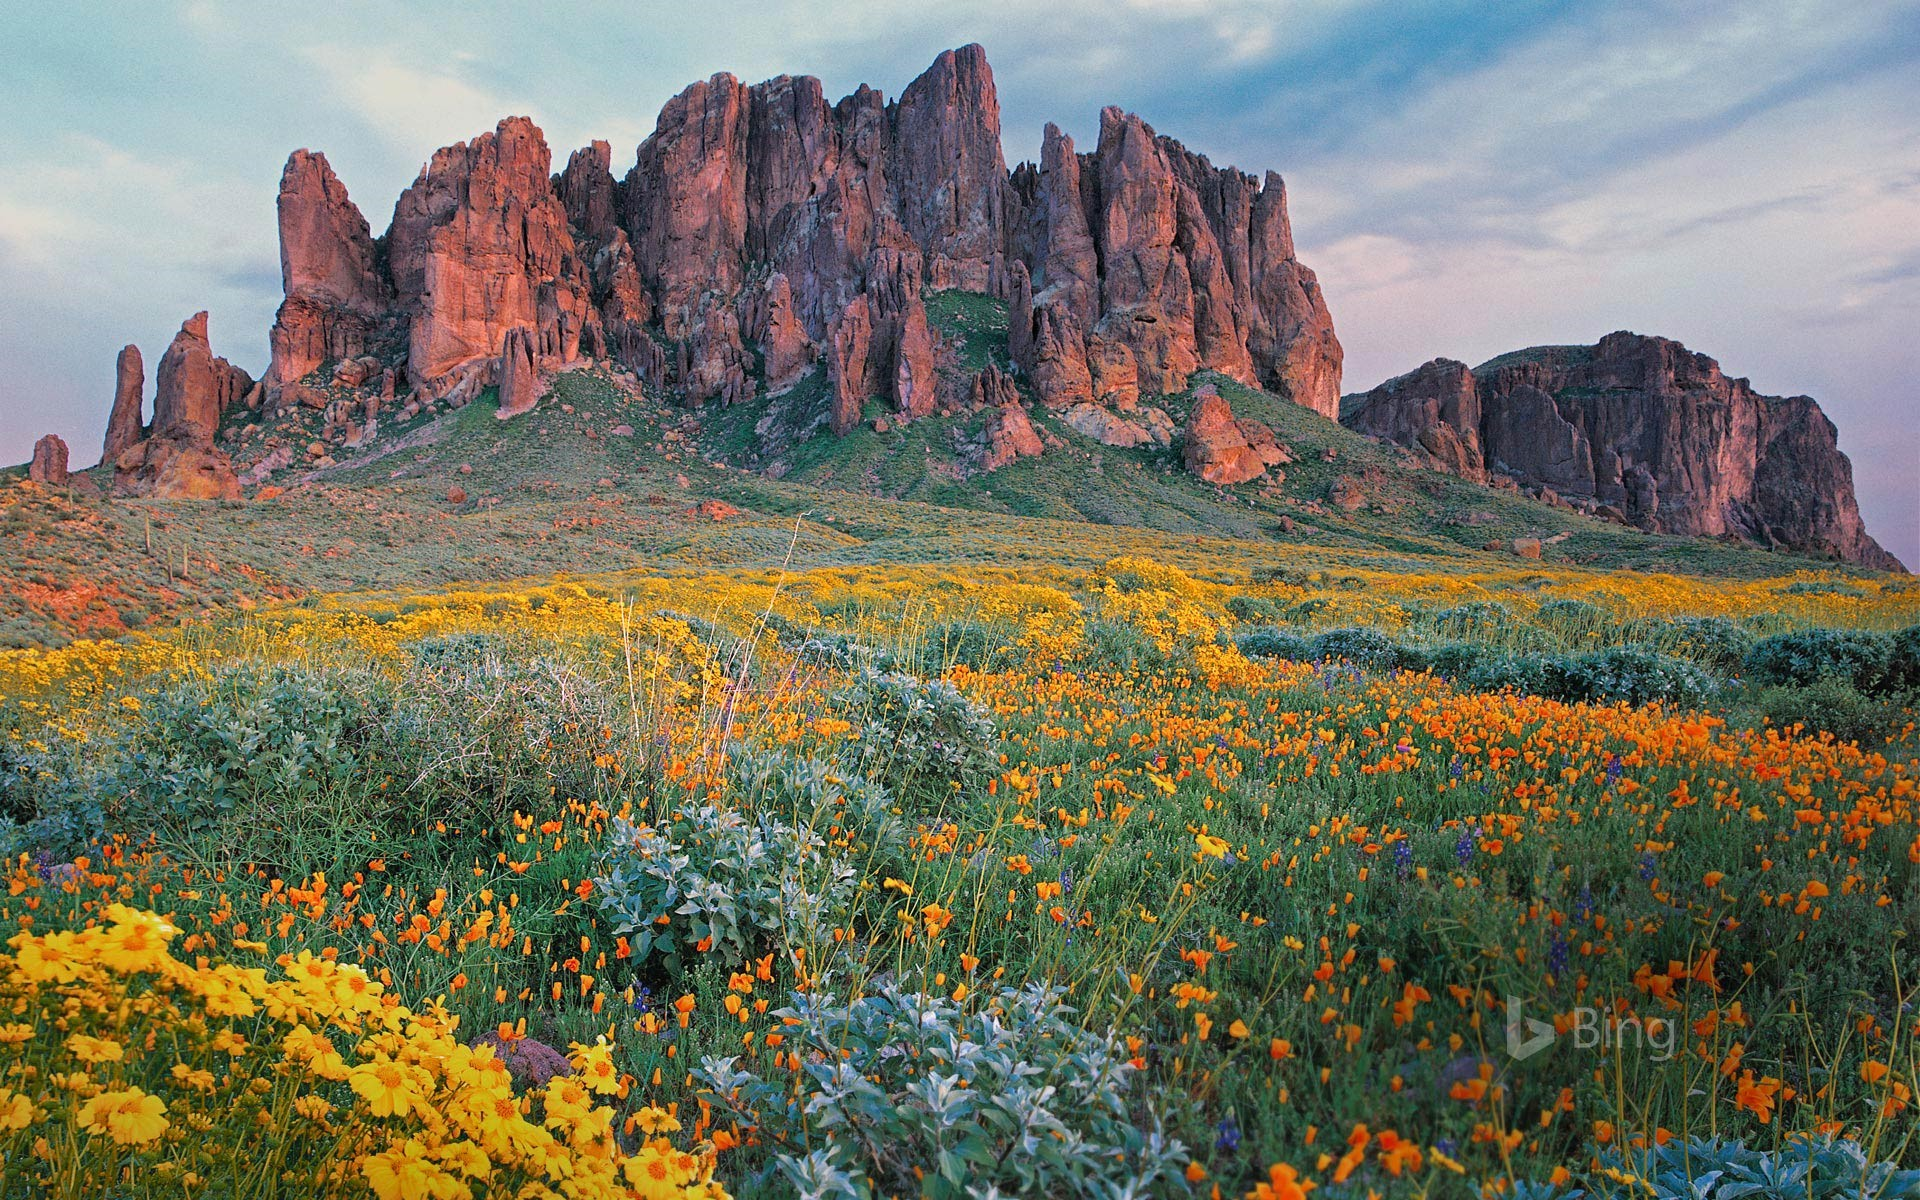 Wildflowers in bloom at Lost Dutchman State Park in Arizona